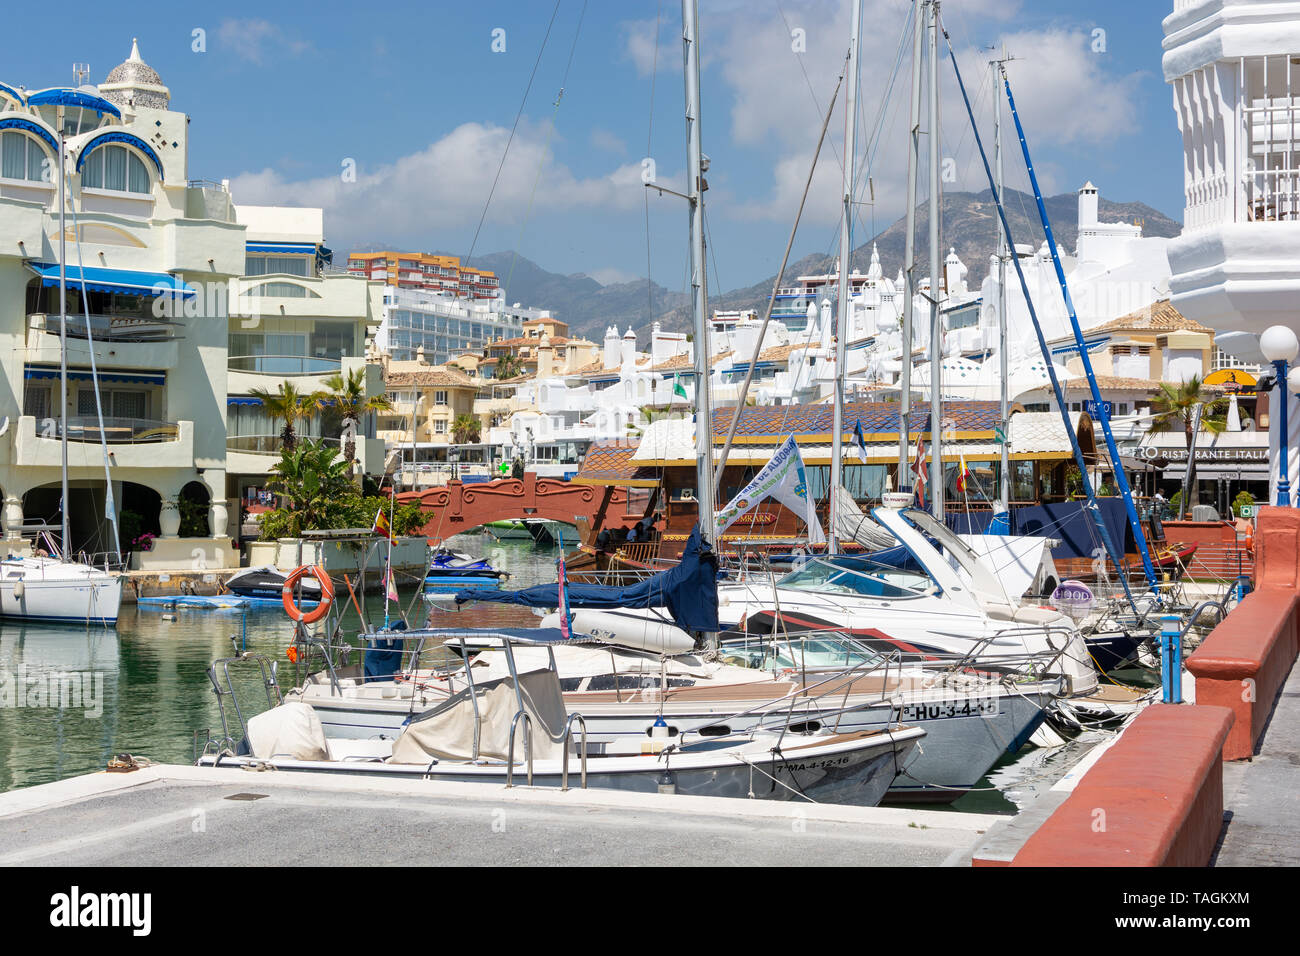 Ostentatious and well-heeled marina resort of Benalmádena, Costa Del Sol, Spain - Stock Image